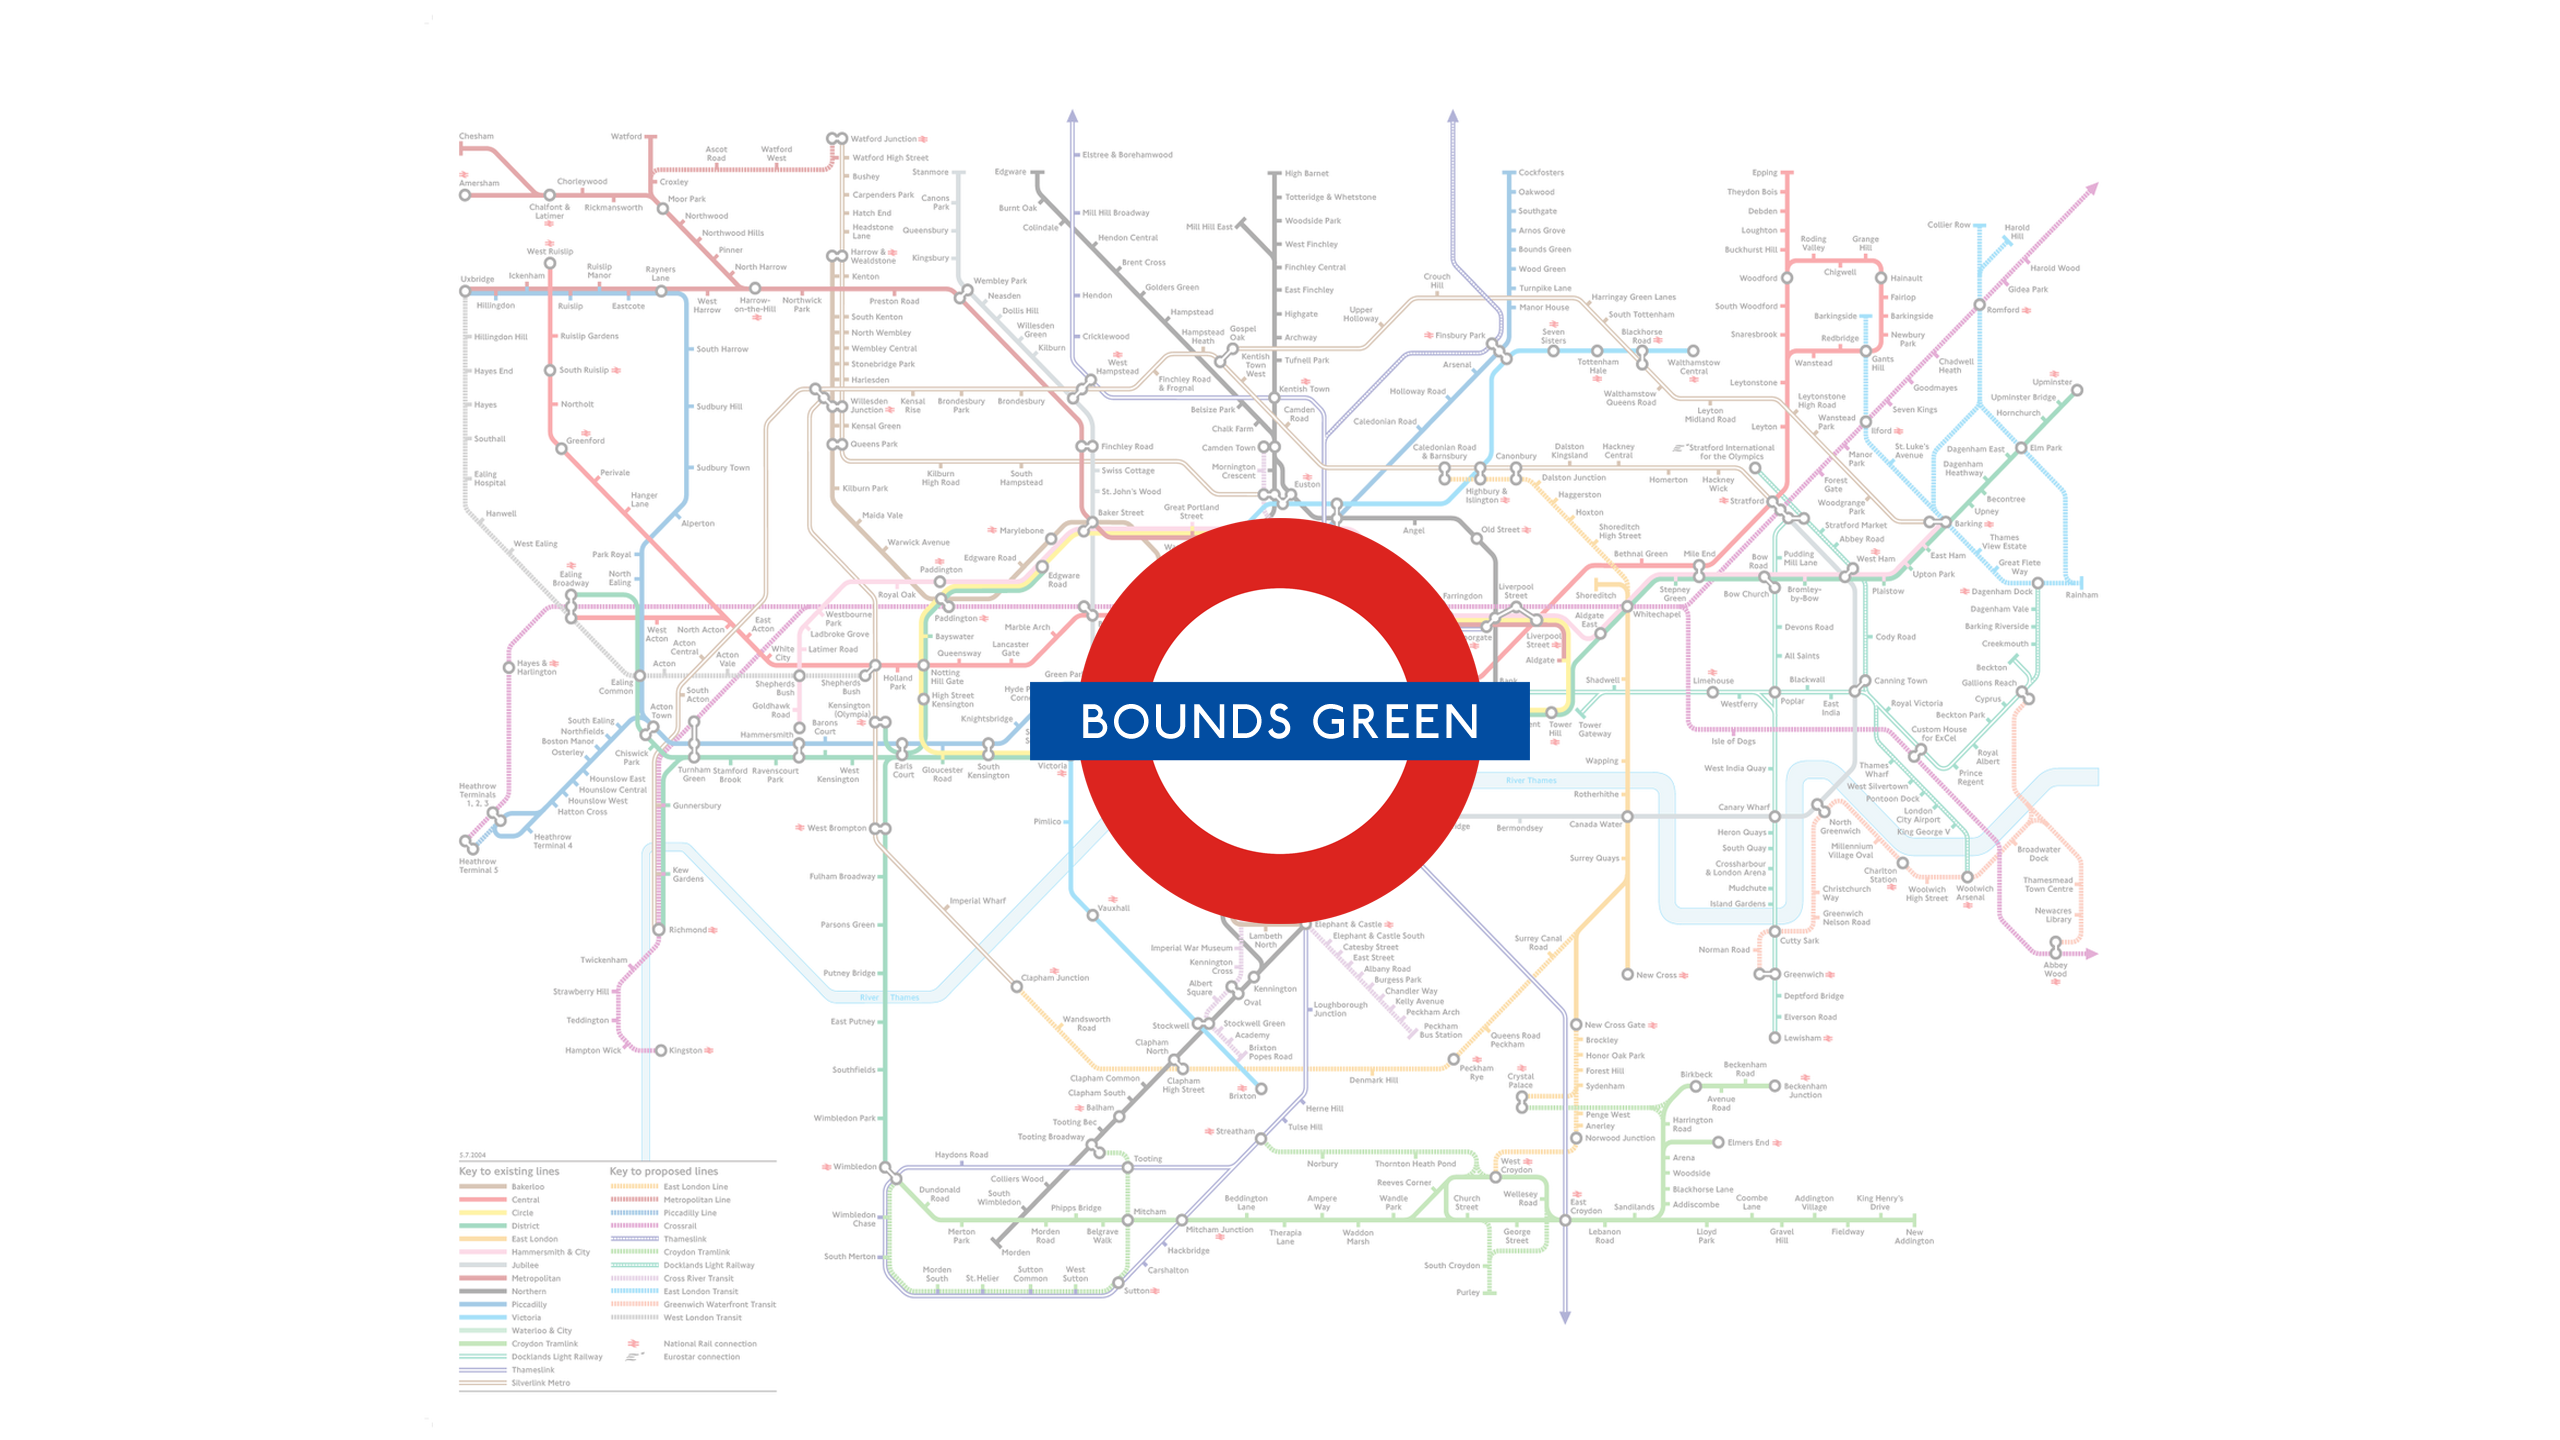 Bounds Green (Map)